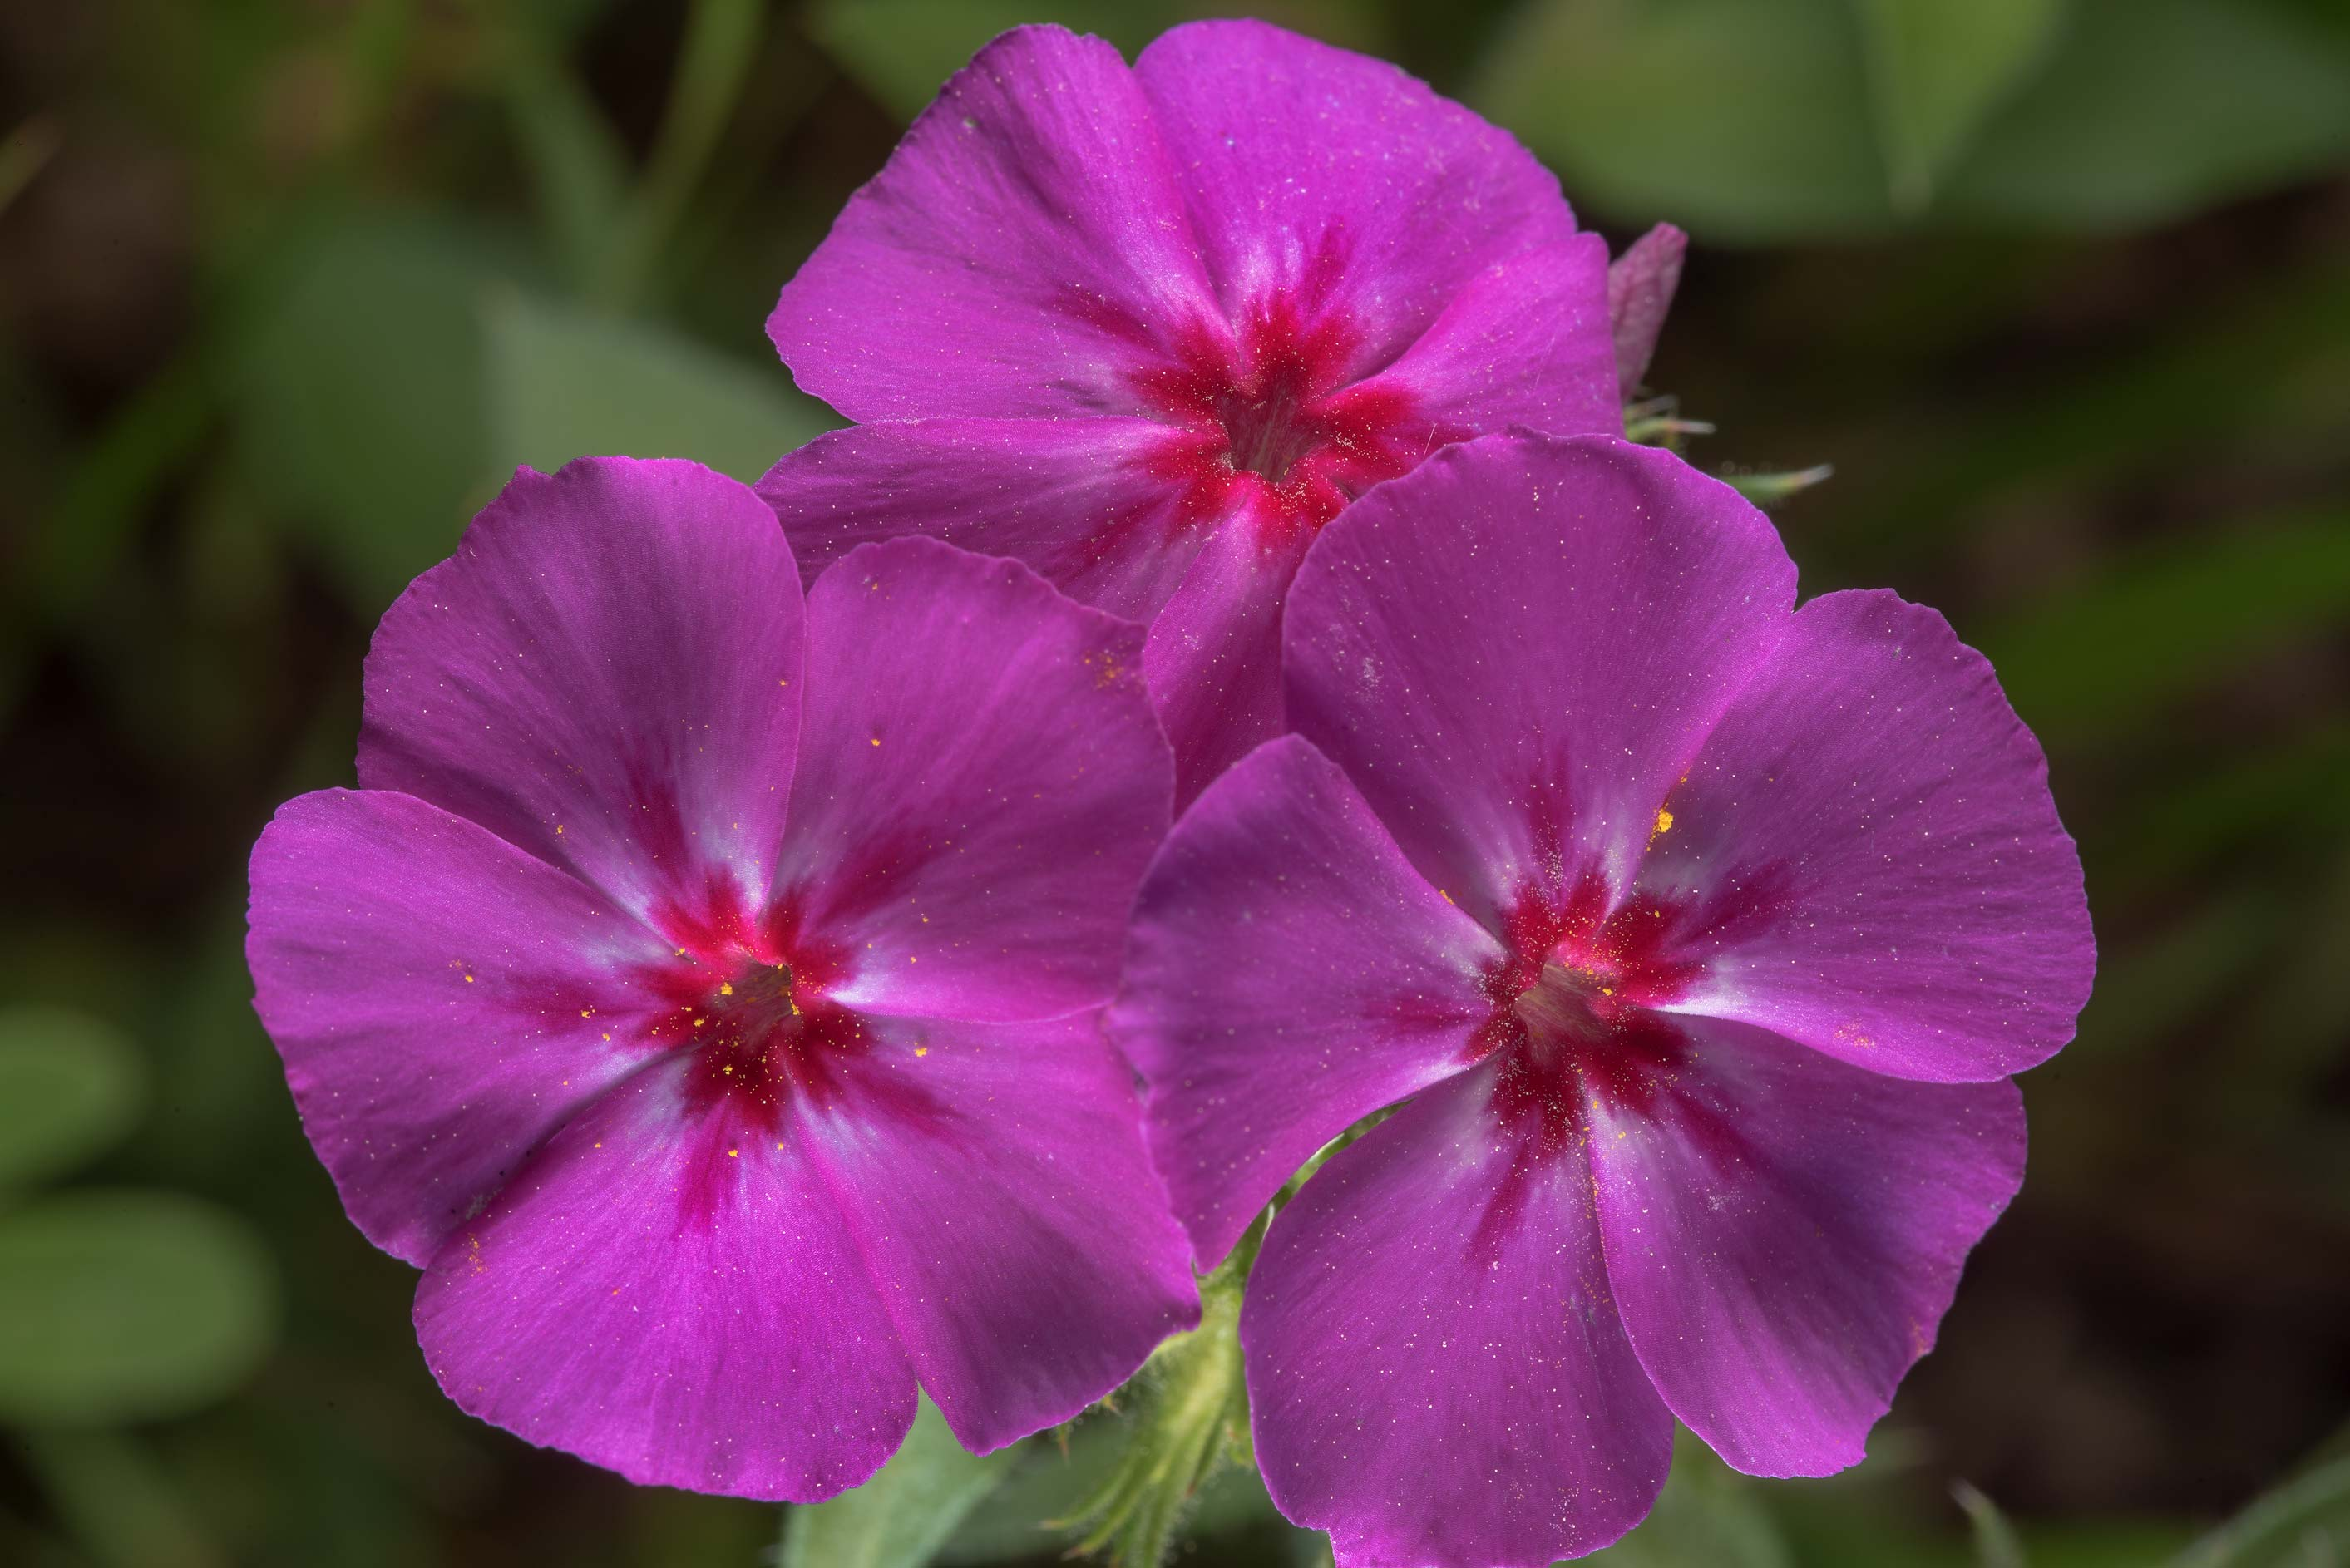 Pink flowers of phlox in Washington-on-the-Brazos State Historic Site. Washington, Texas